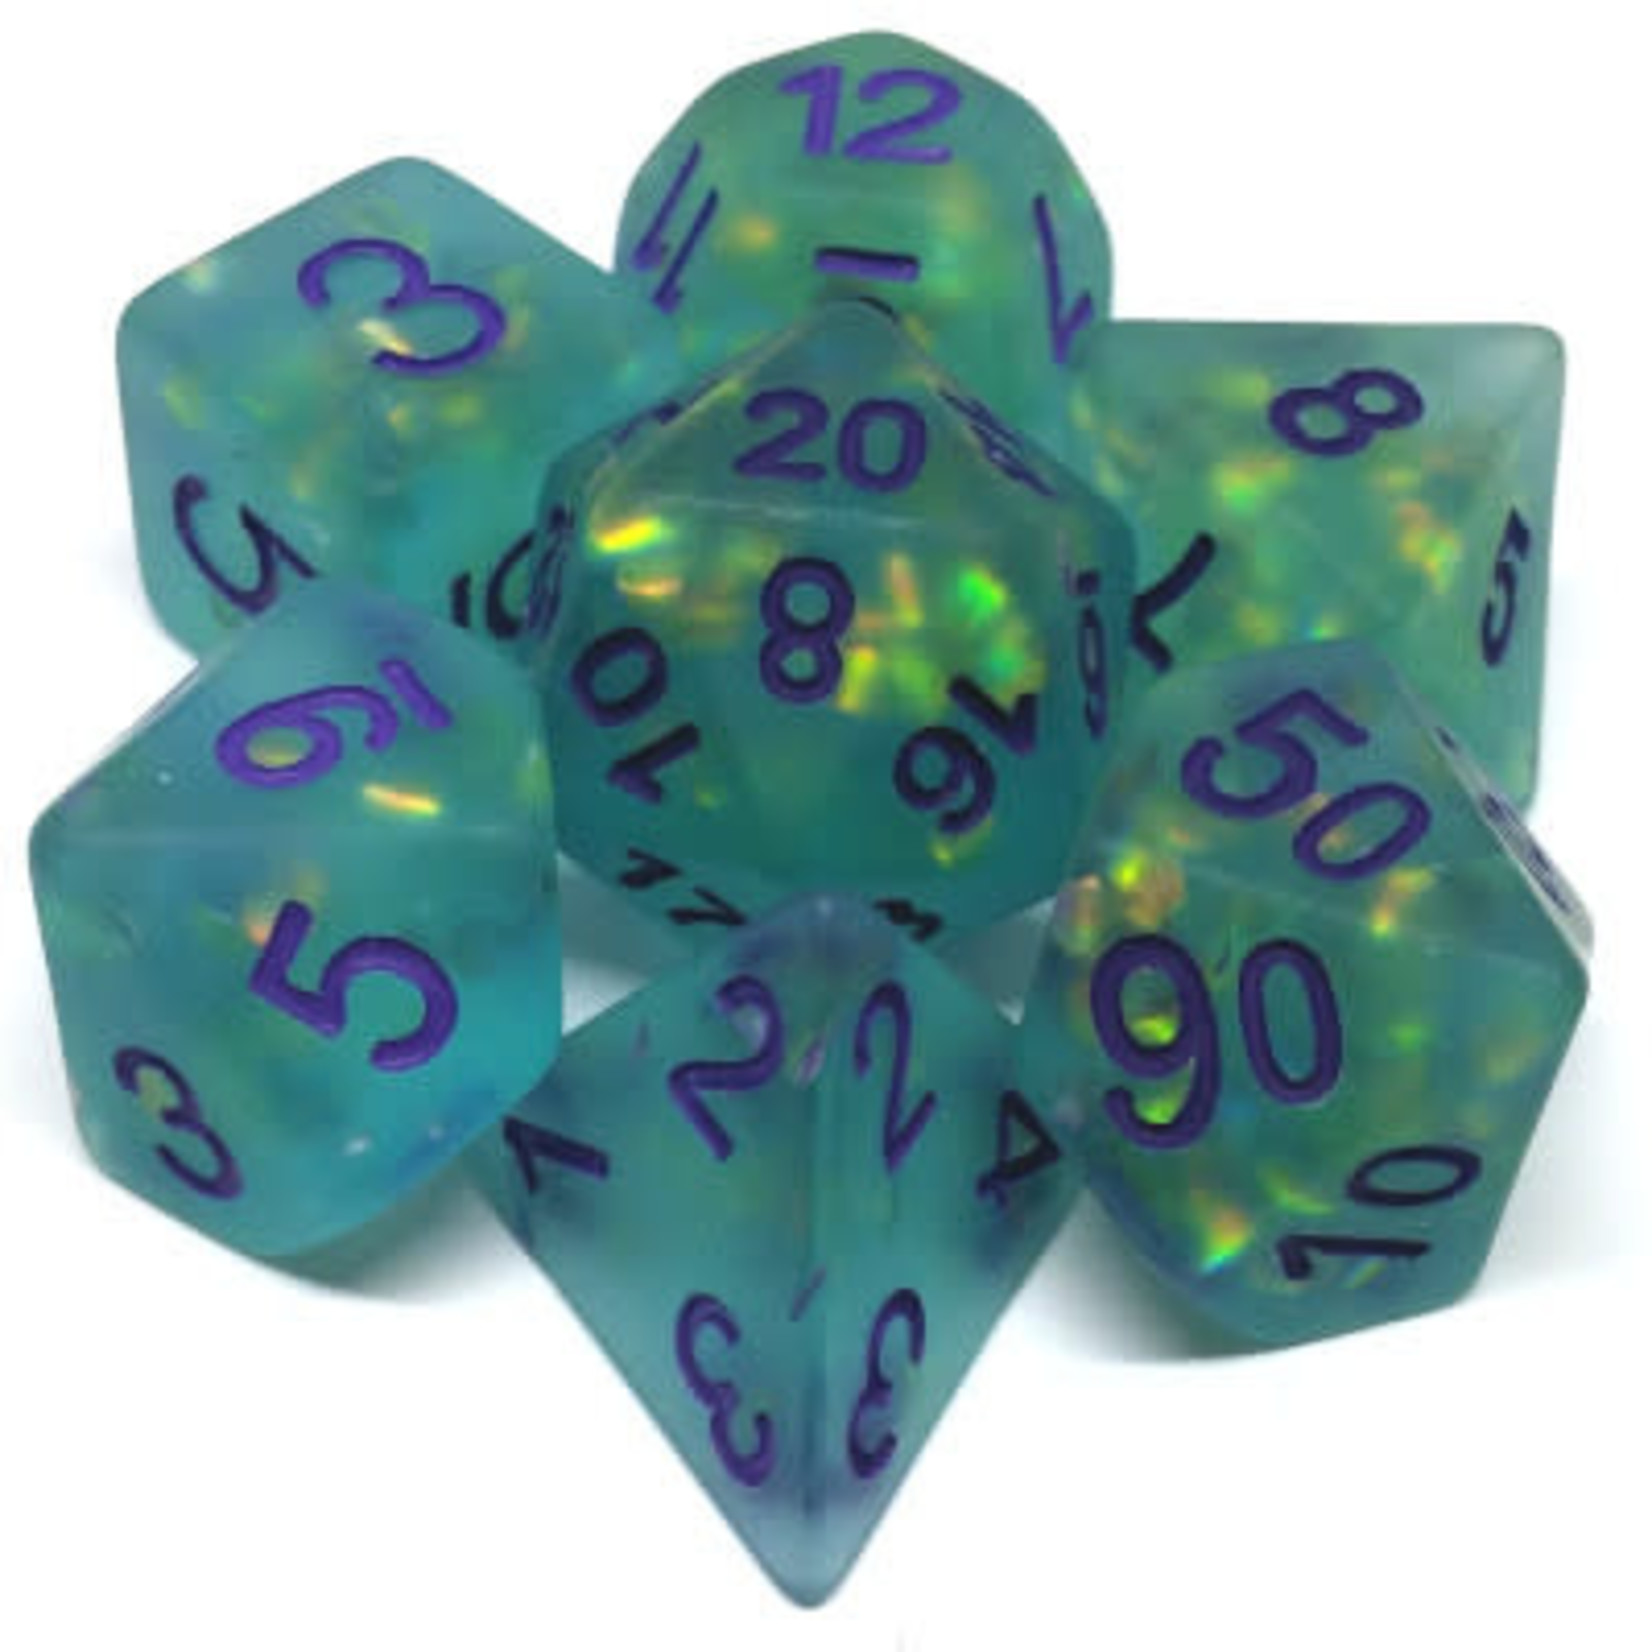 Metallic Dice Game Opale glace: Sarcelle